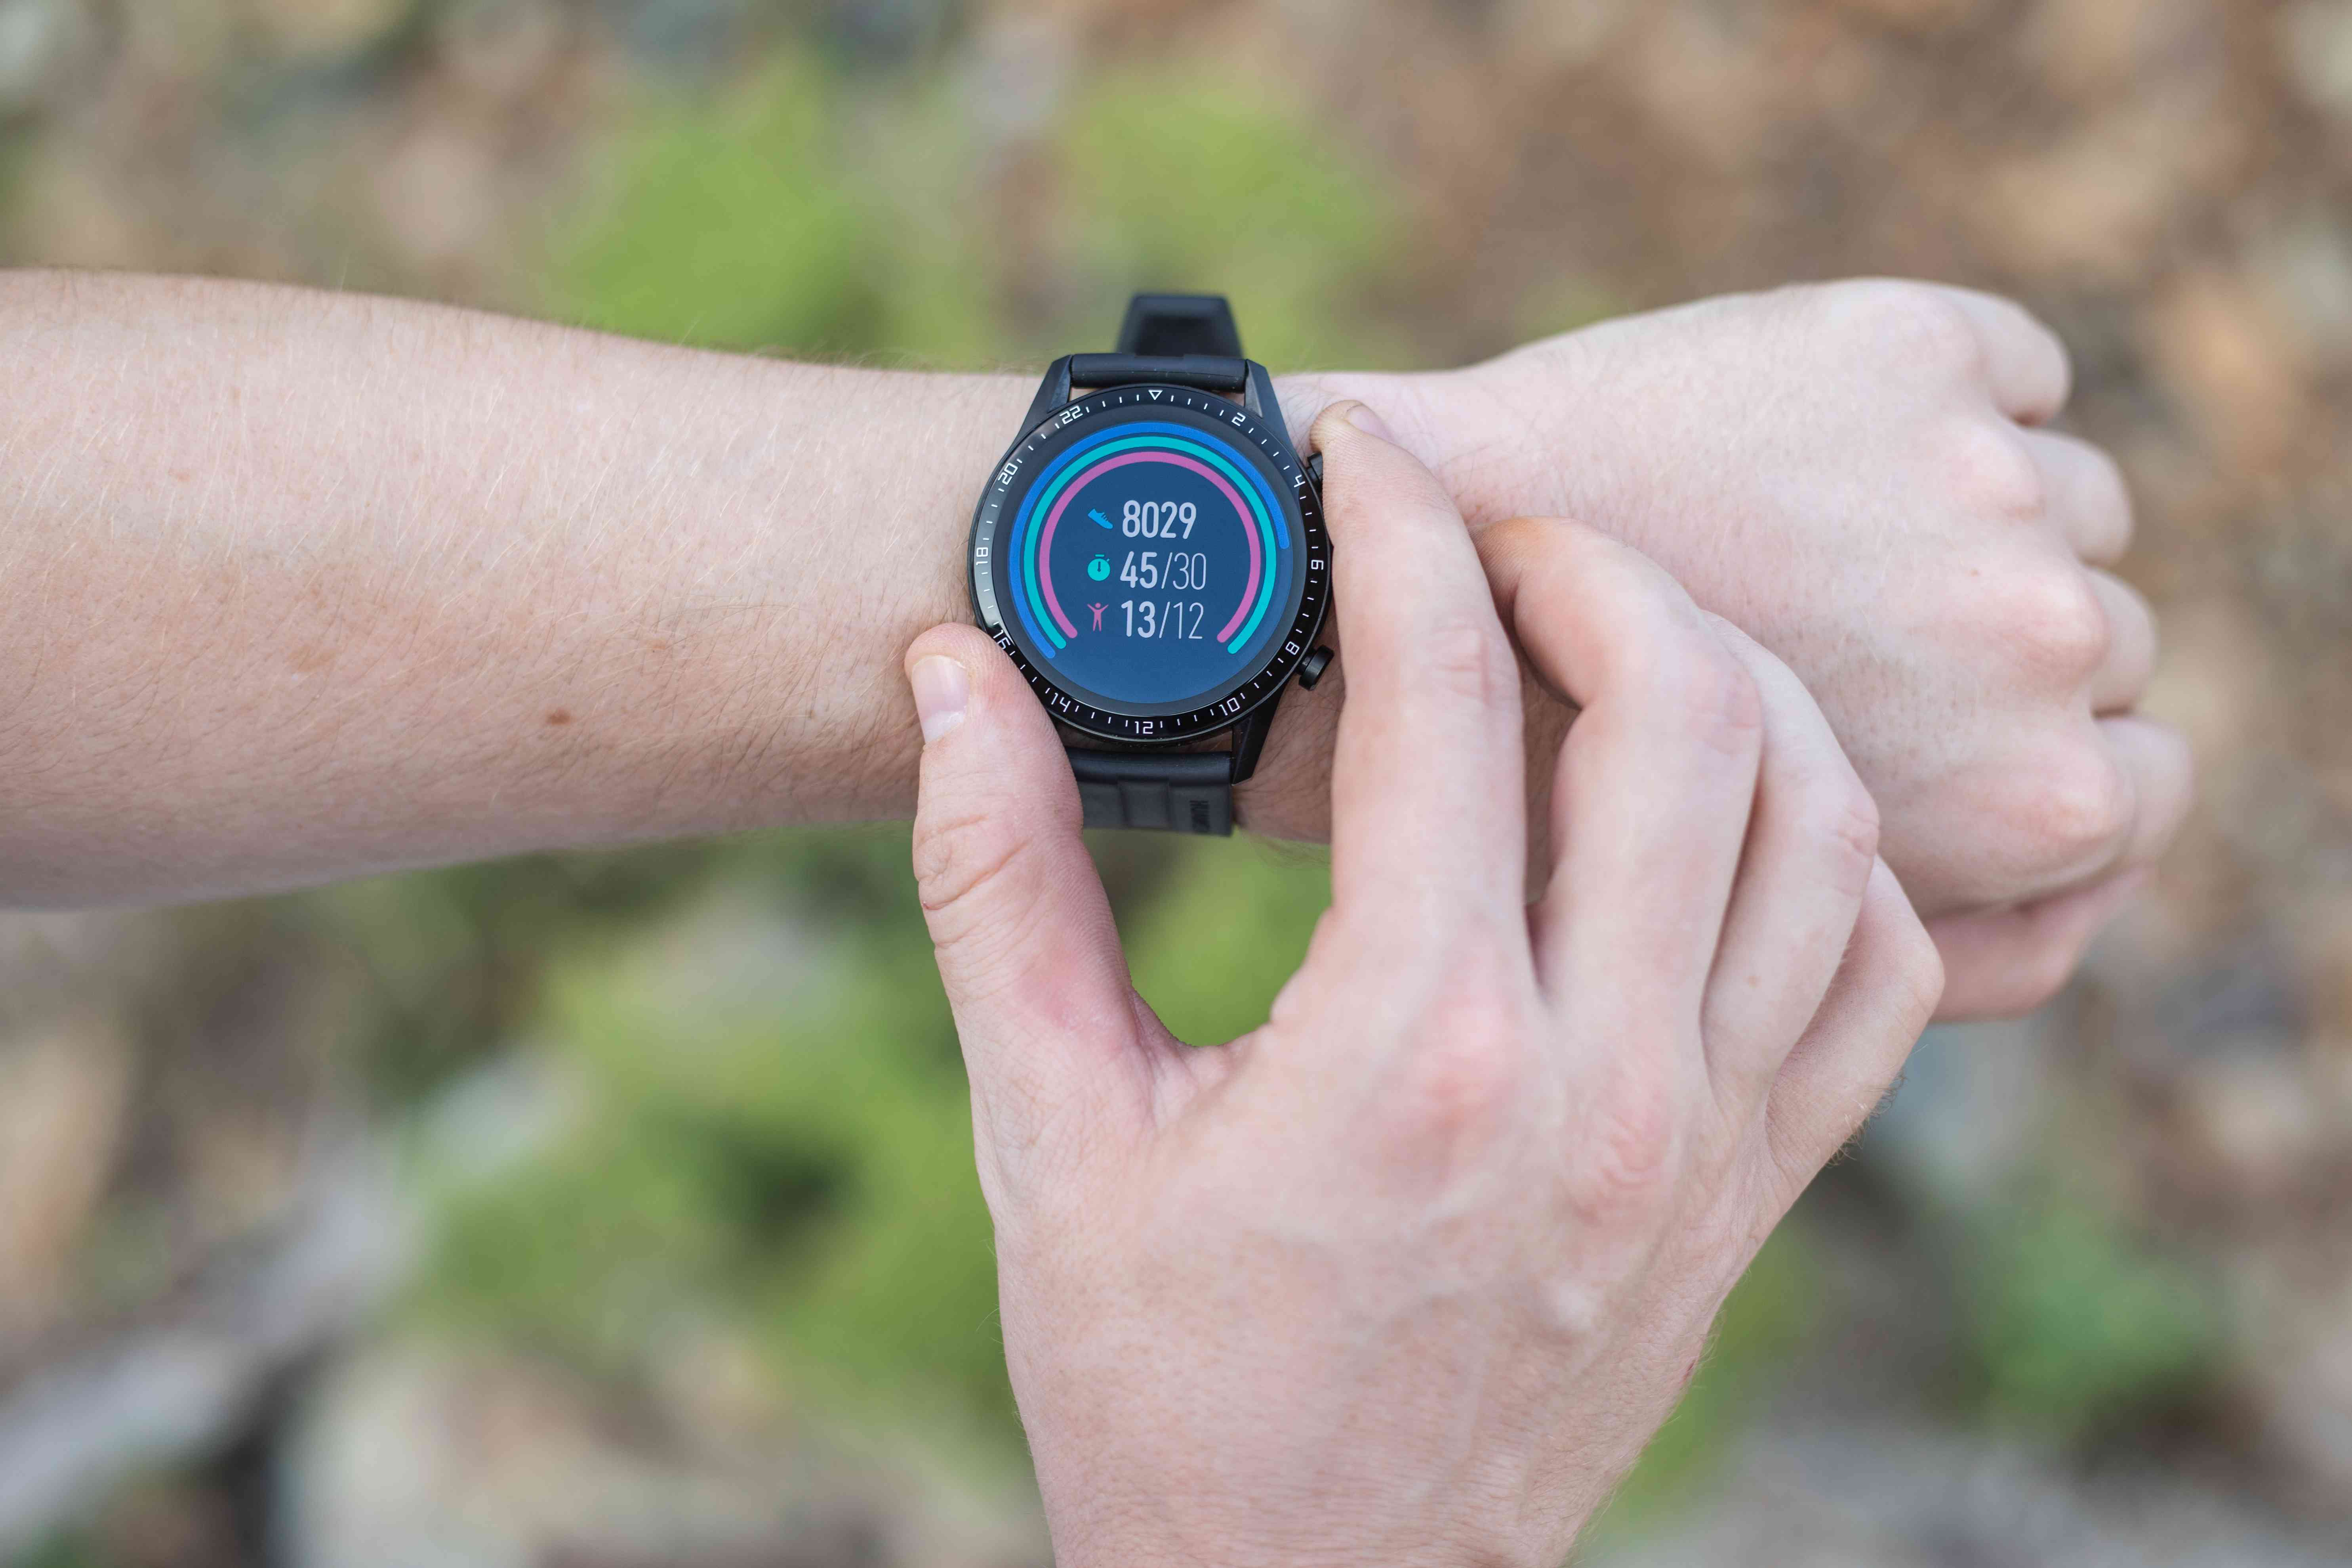 person wearing pedometer tracking watch on wrist checks their steps outside